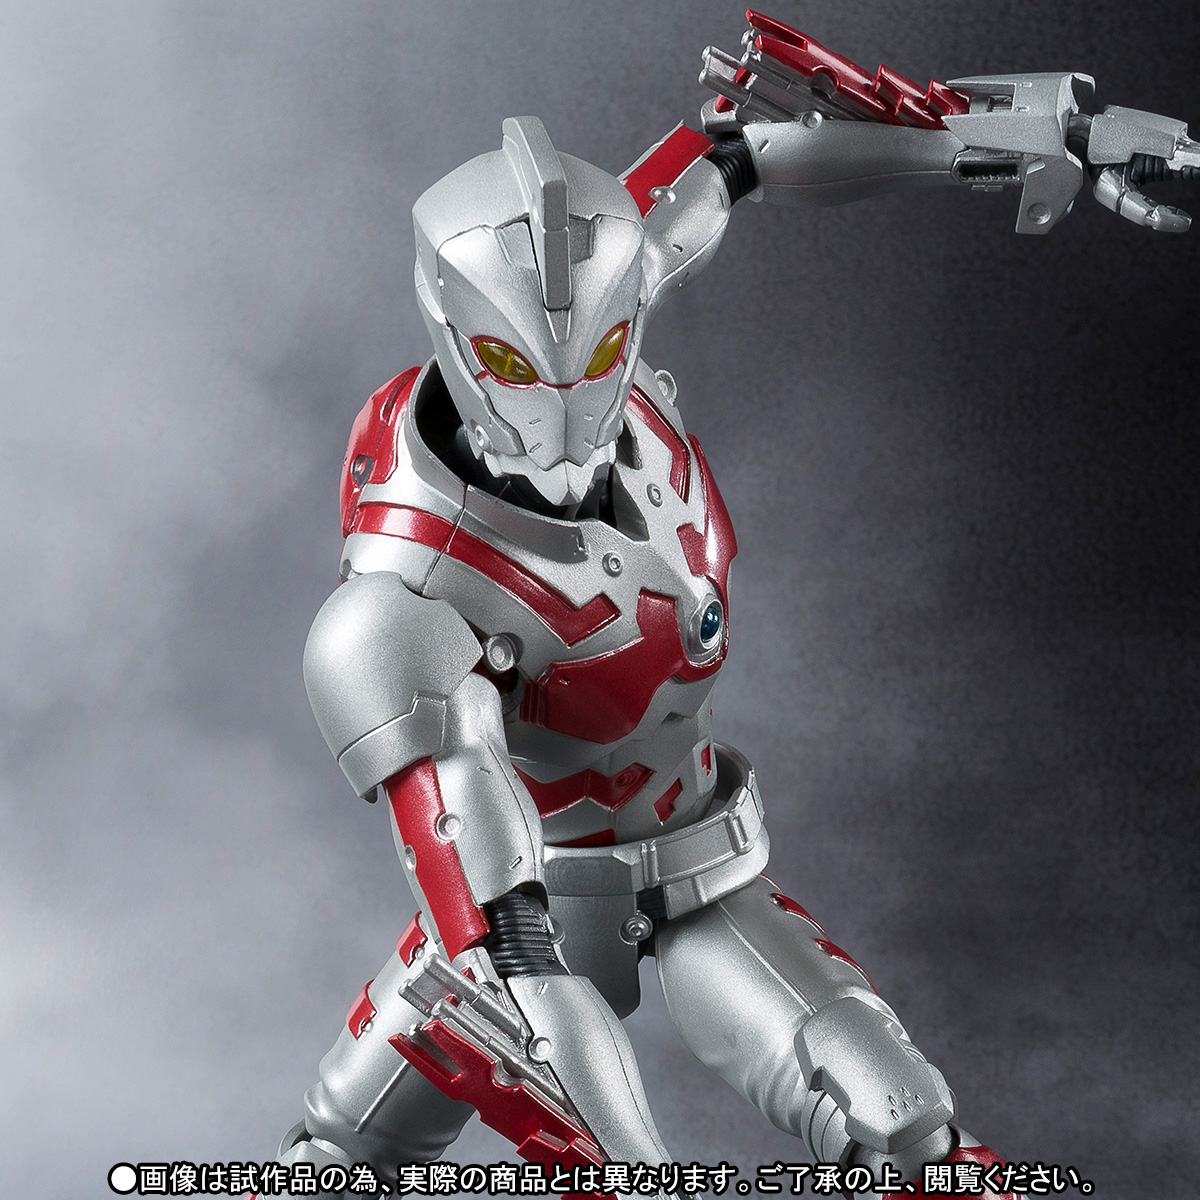 ULTRA-ACT x S.H.Figuarts - ACE SUIT (Limited Pre-order)